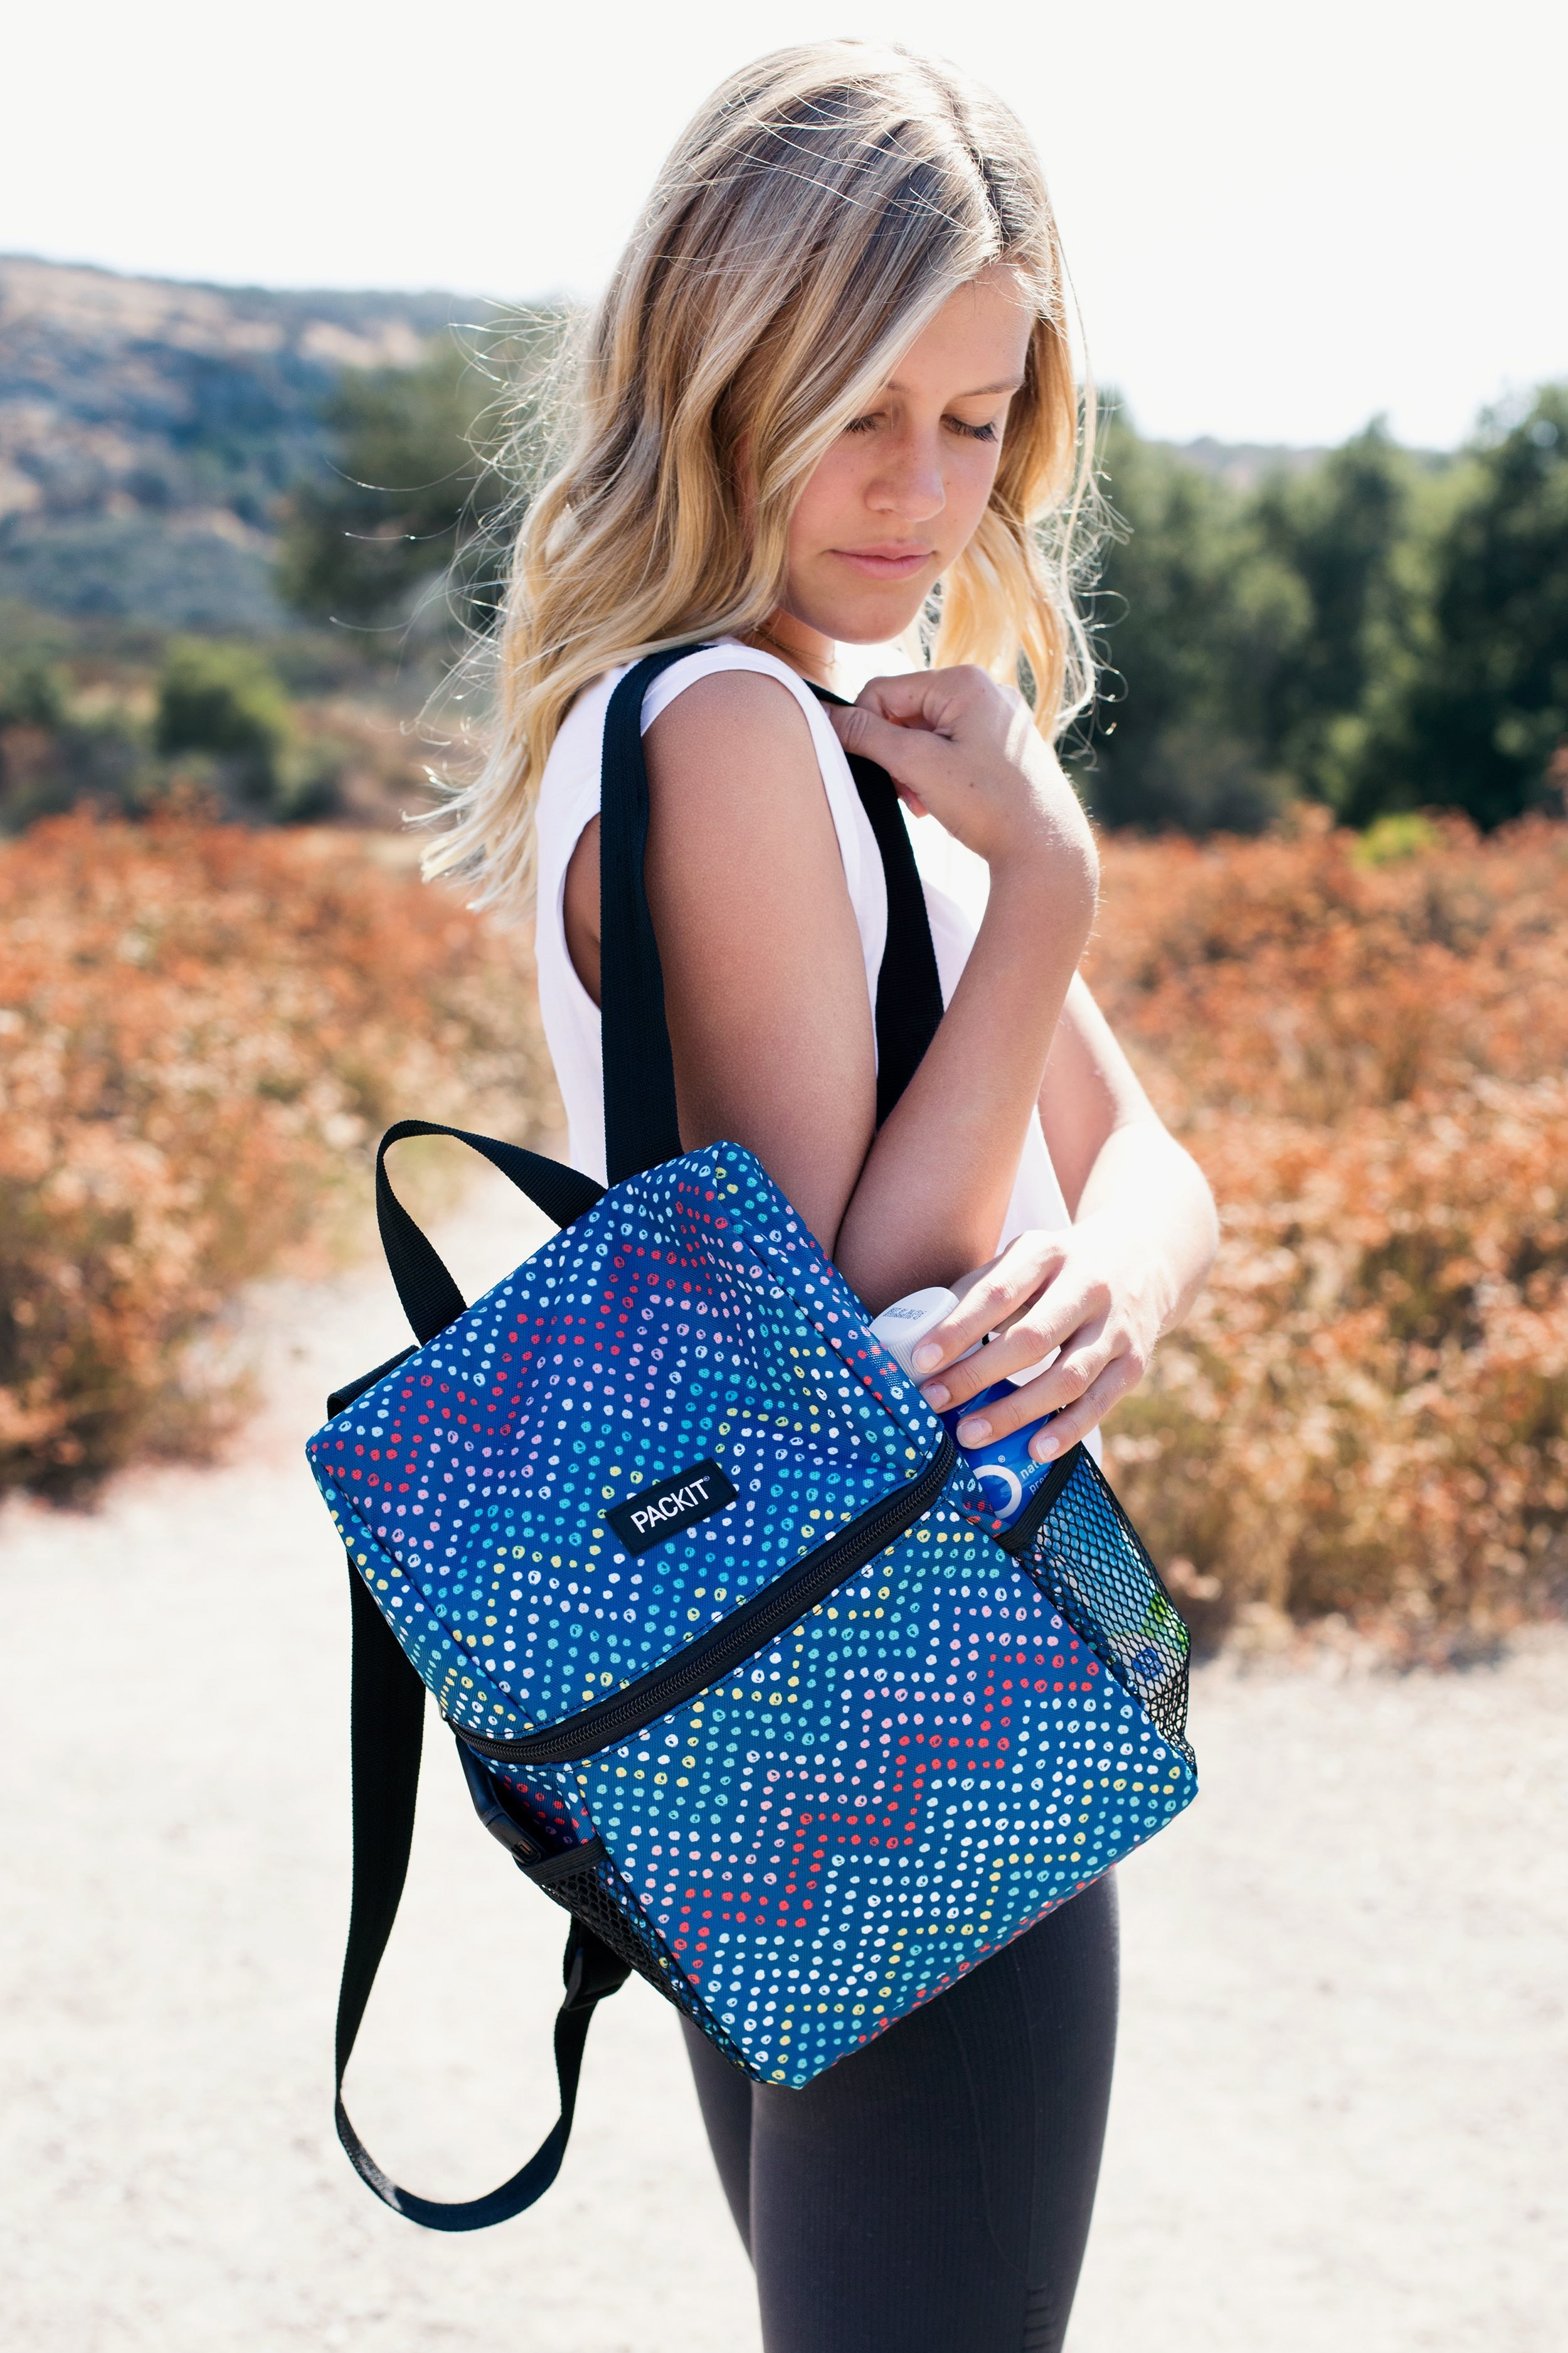 Lifestyle Backpack Dottie Chevron Hires 2 Resize